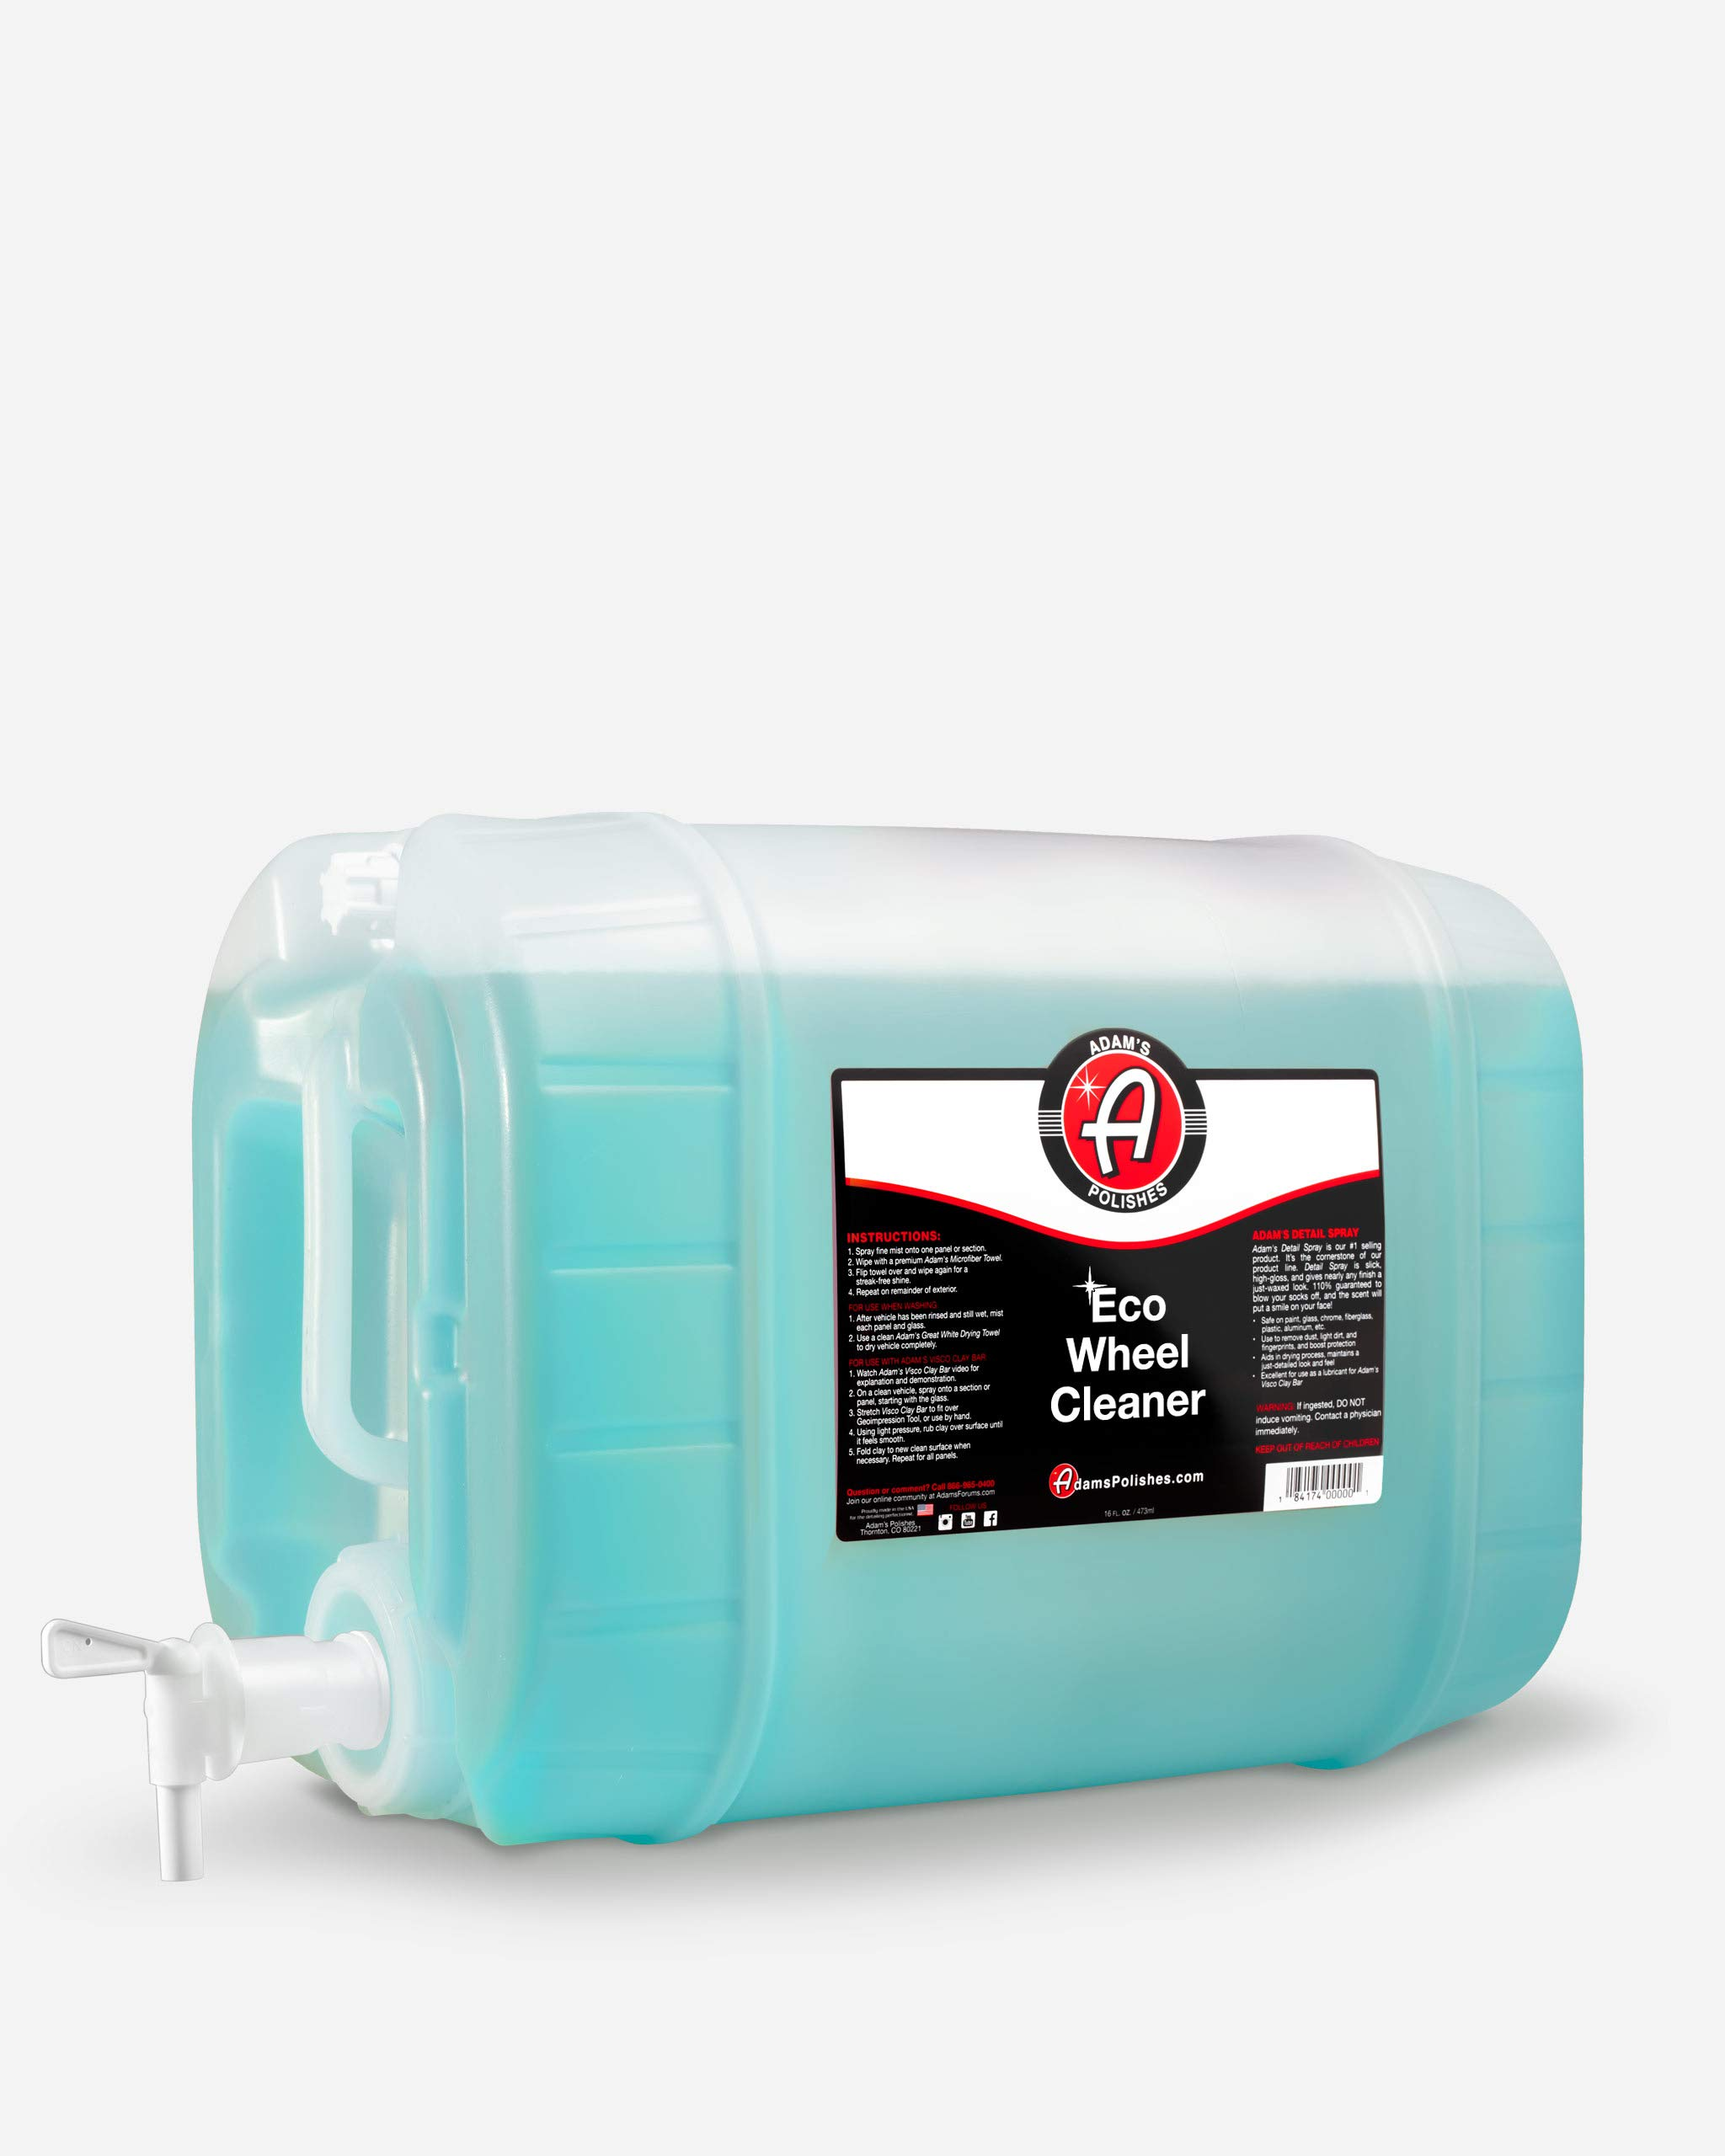 Adam's New Eco Wheel Cleaner - Safely Clean Any Wheel Finish - Tough on Dirt and Brake Dust But Gentle on Your Wheels and The Environment (5 Gallon) by Adam's Polishes